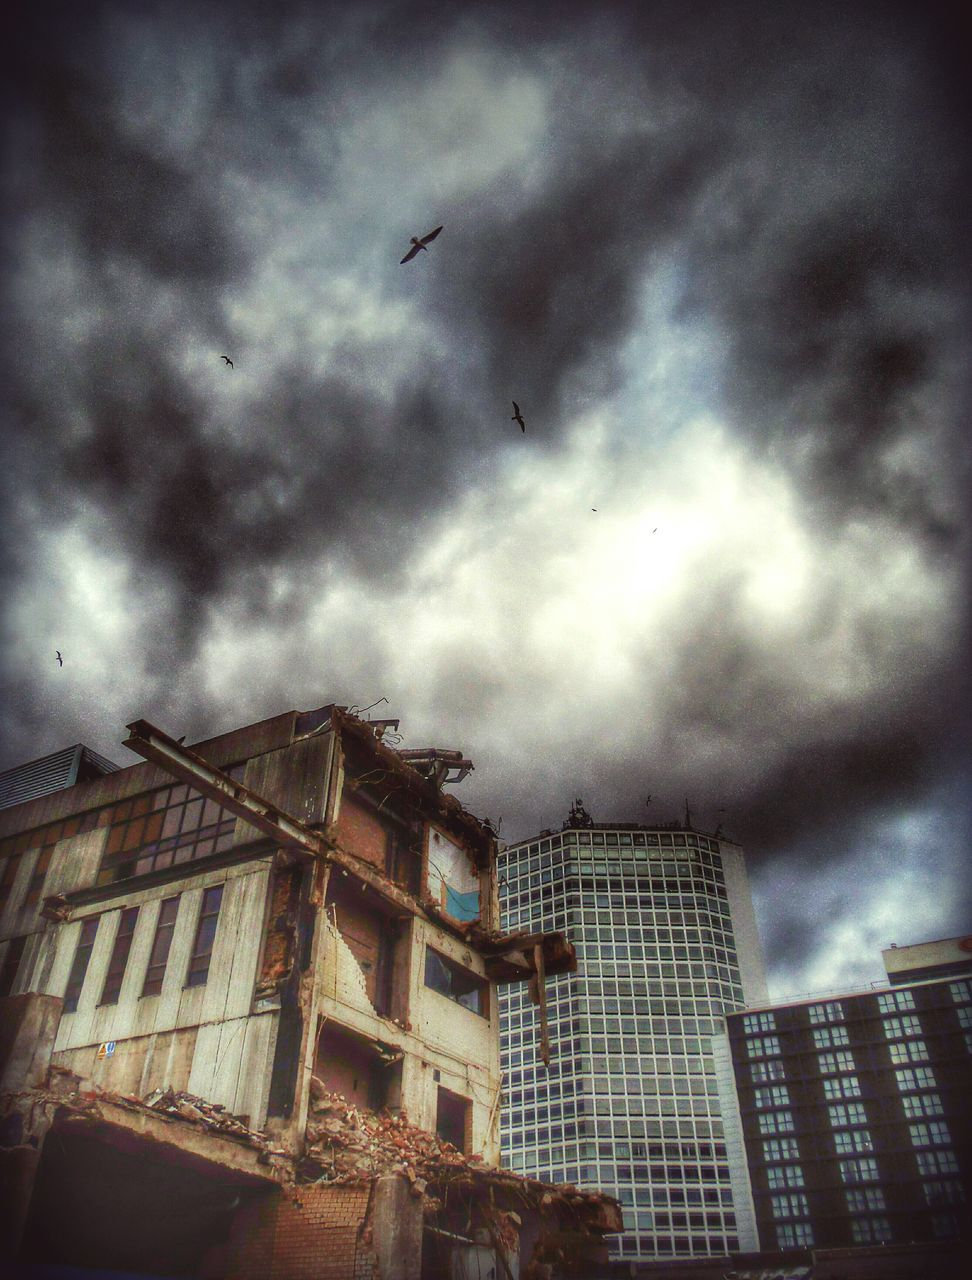 architecture, building exterior, sky, built structure, cloud - sky, flying, city, low angle view, skyscraper, city life, urban, bird, storm cloud, outdoors, no people, modern, cityscape, day